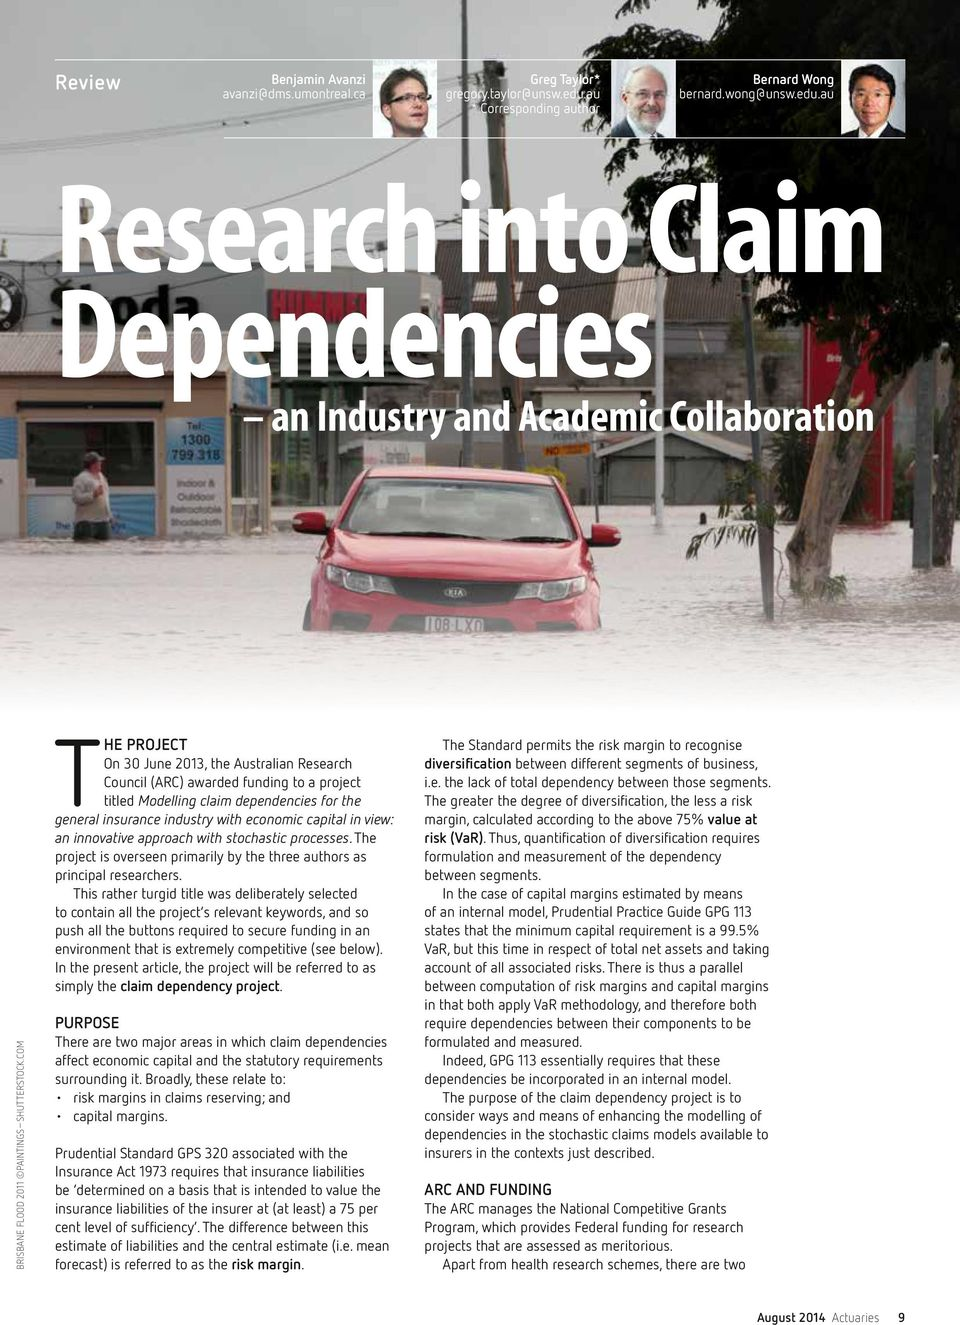 com The project On 30 June 2013, the Australian Research Council (ARC) awarded funding to a project titled Modelling claim dependencies for the general insurance industry with economic capital in